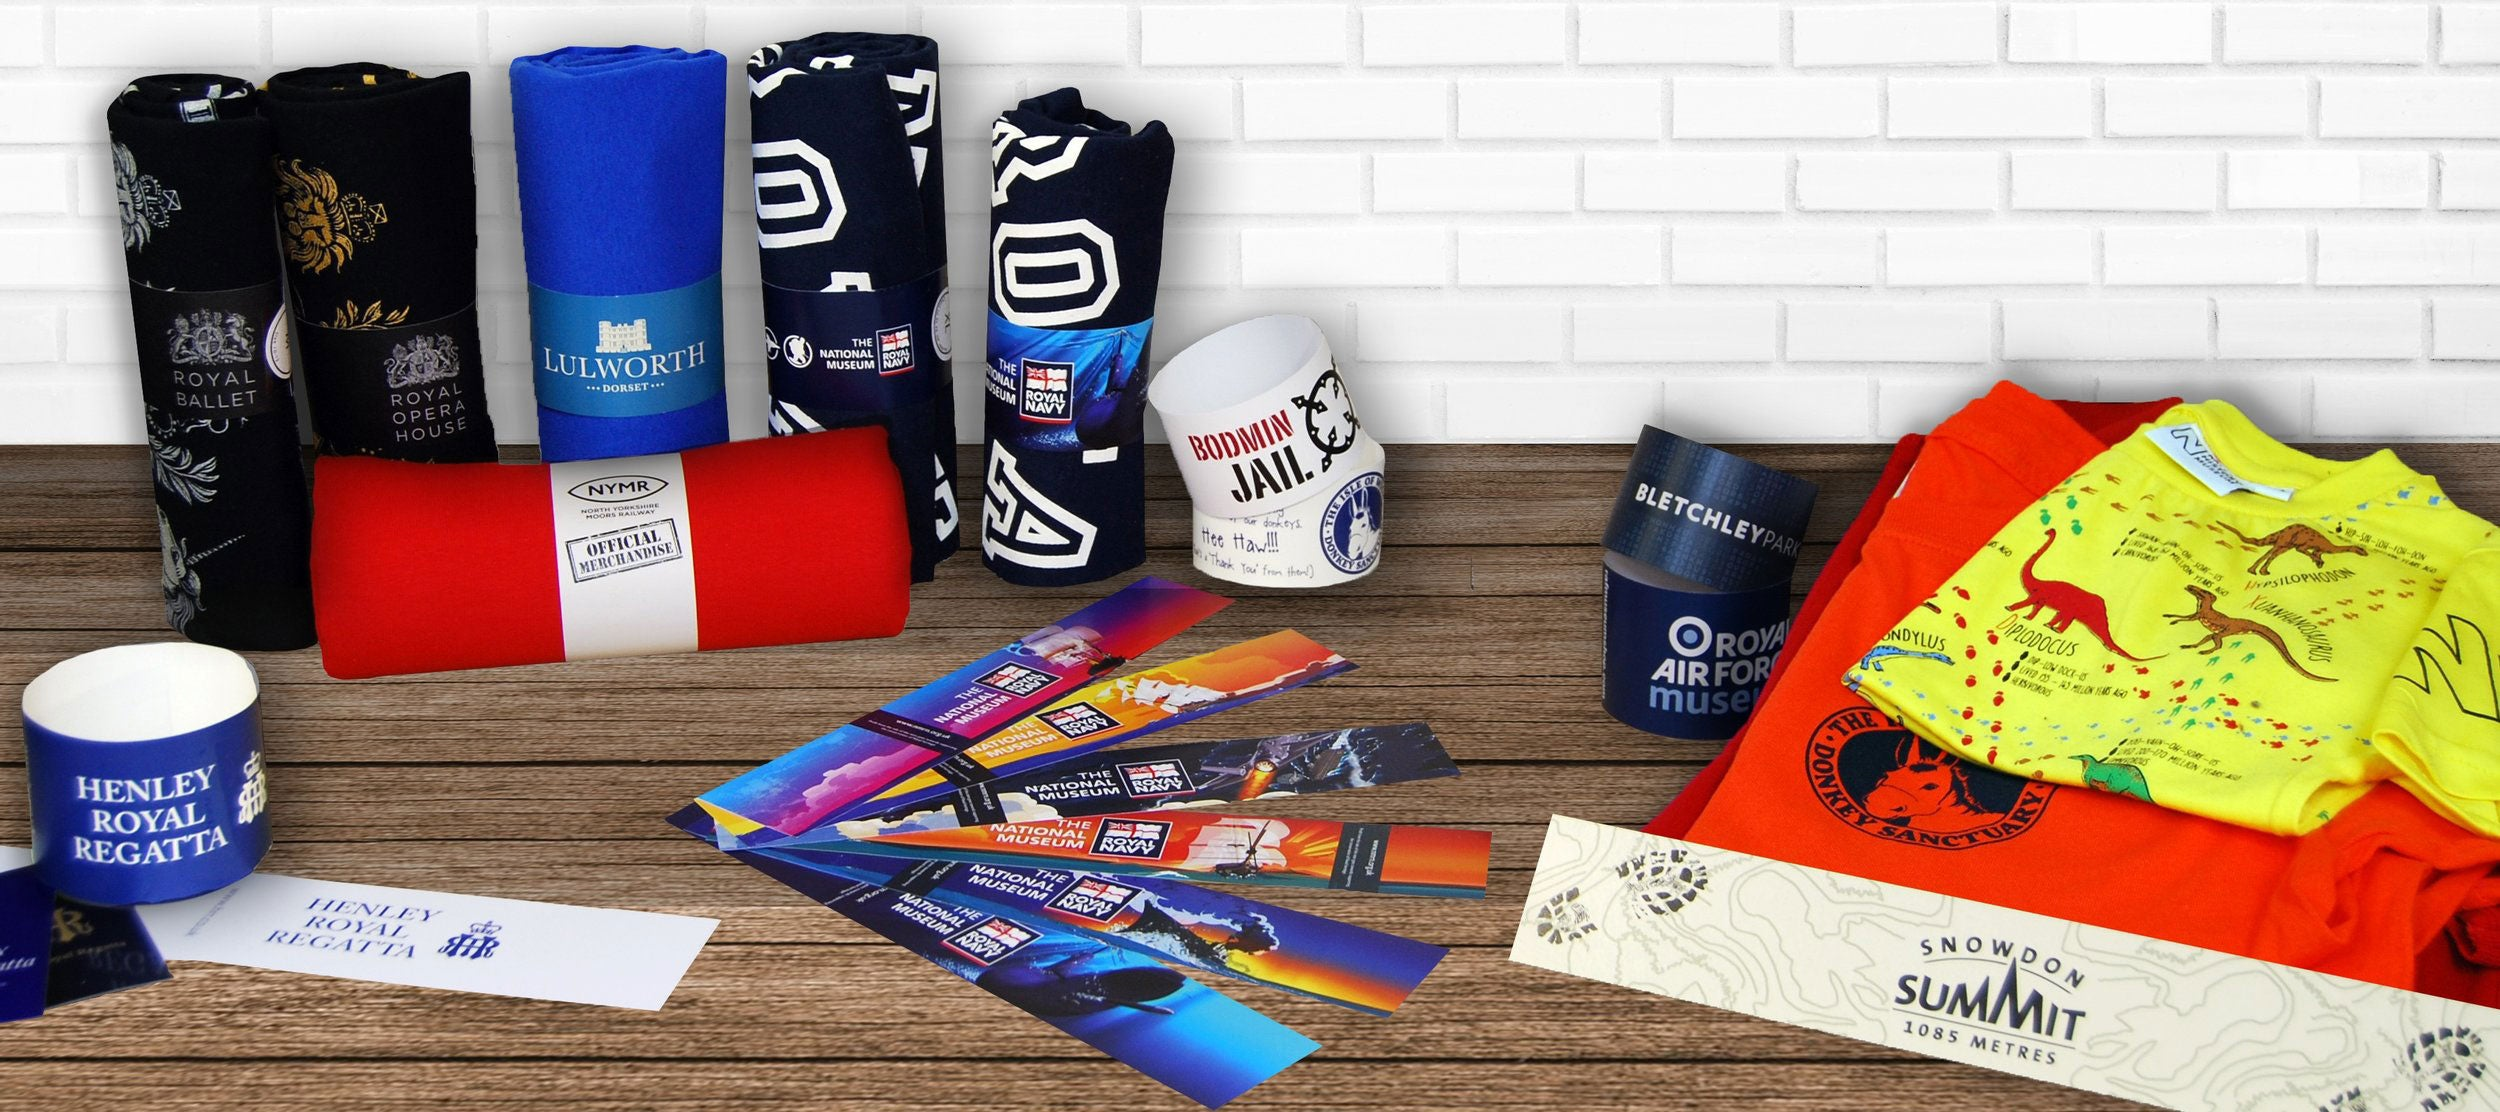 A range of products produced by Kingfisher Giftwear